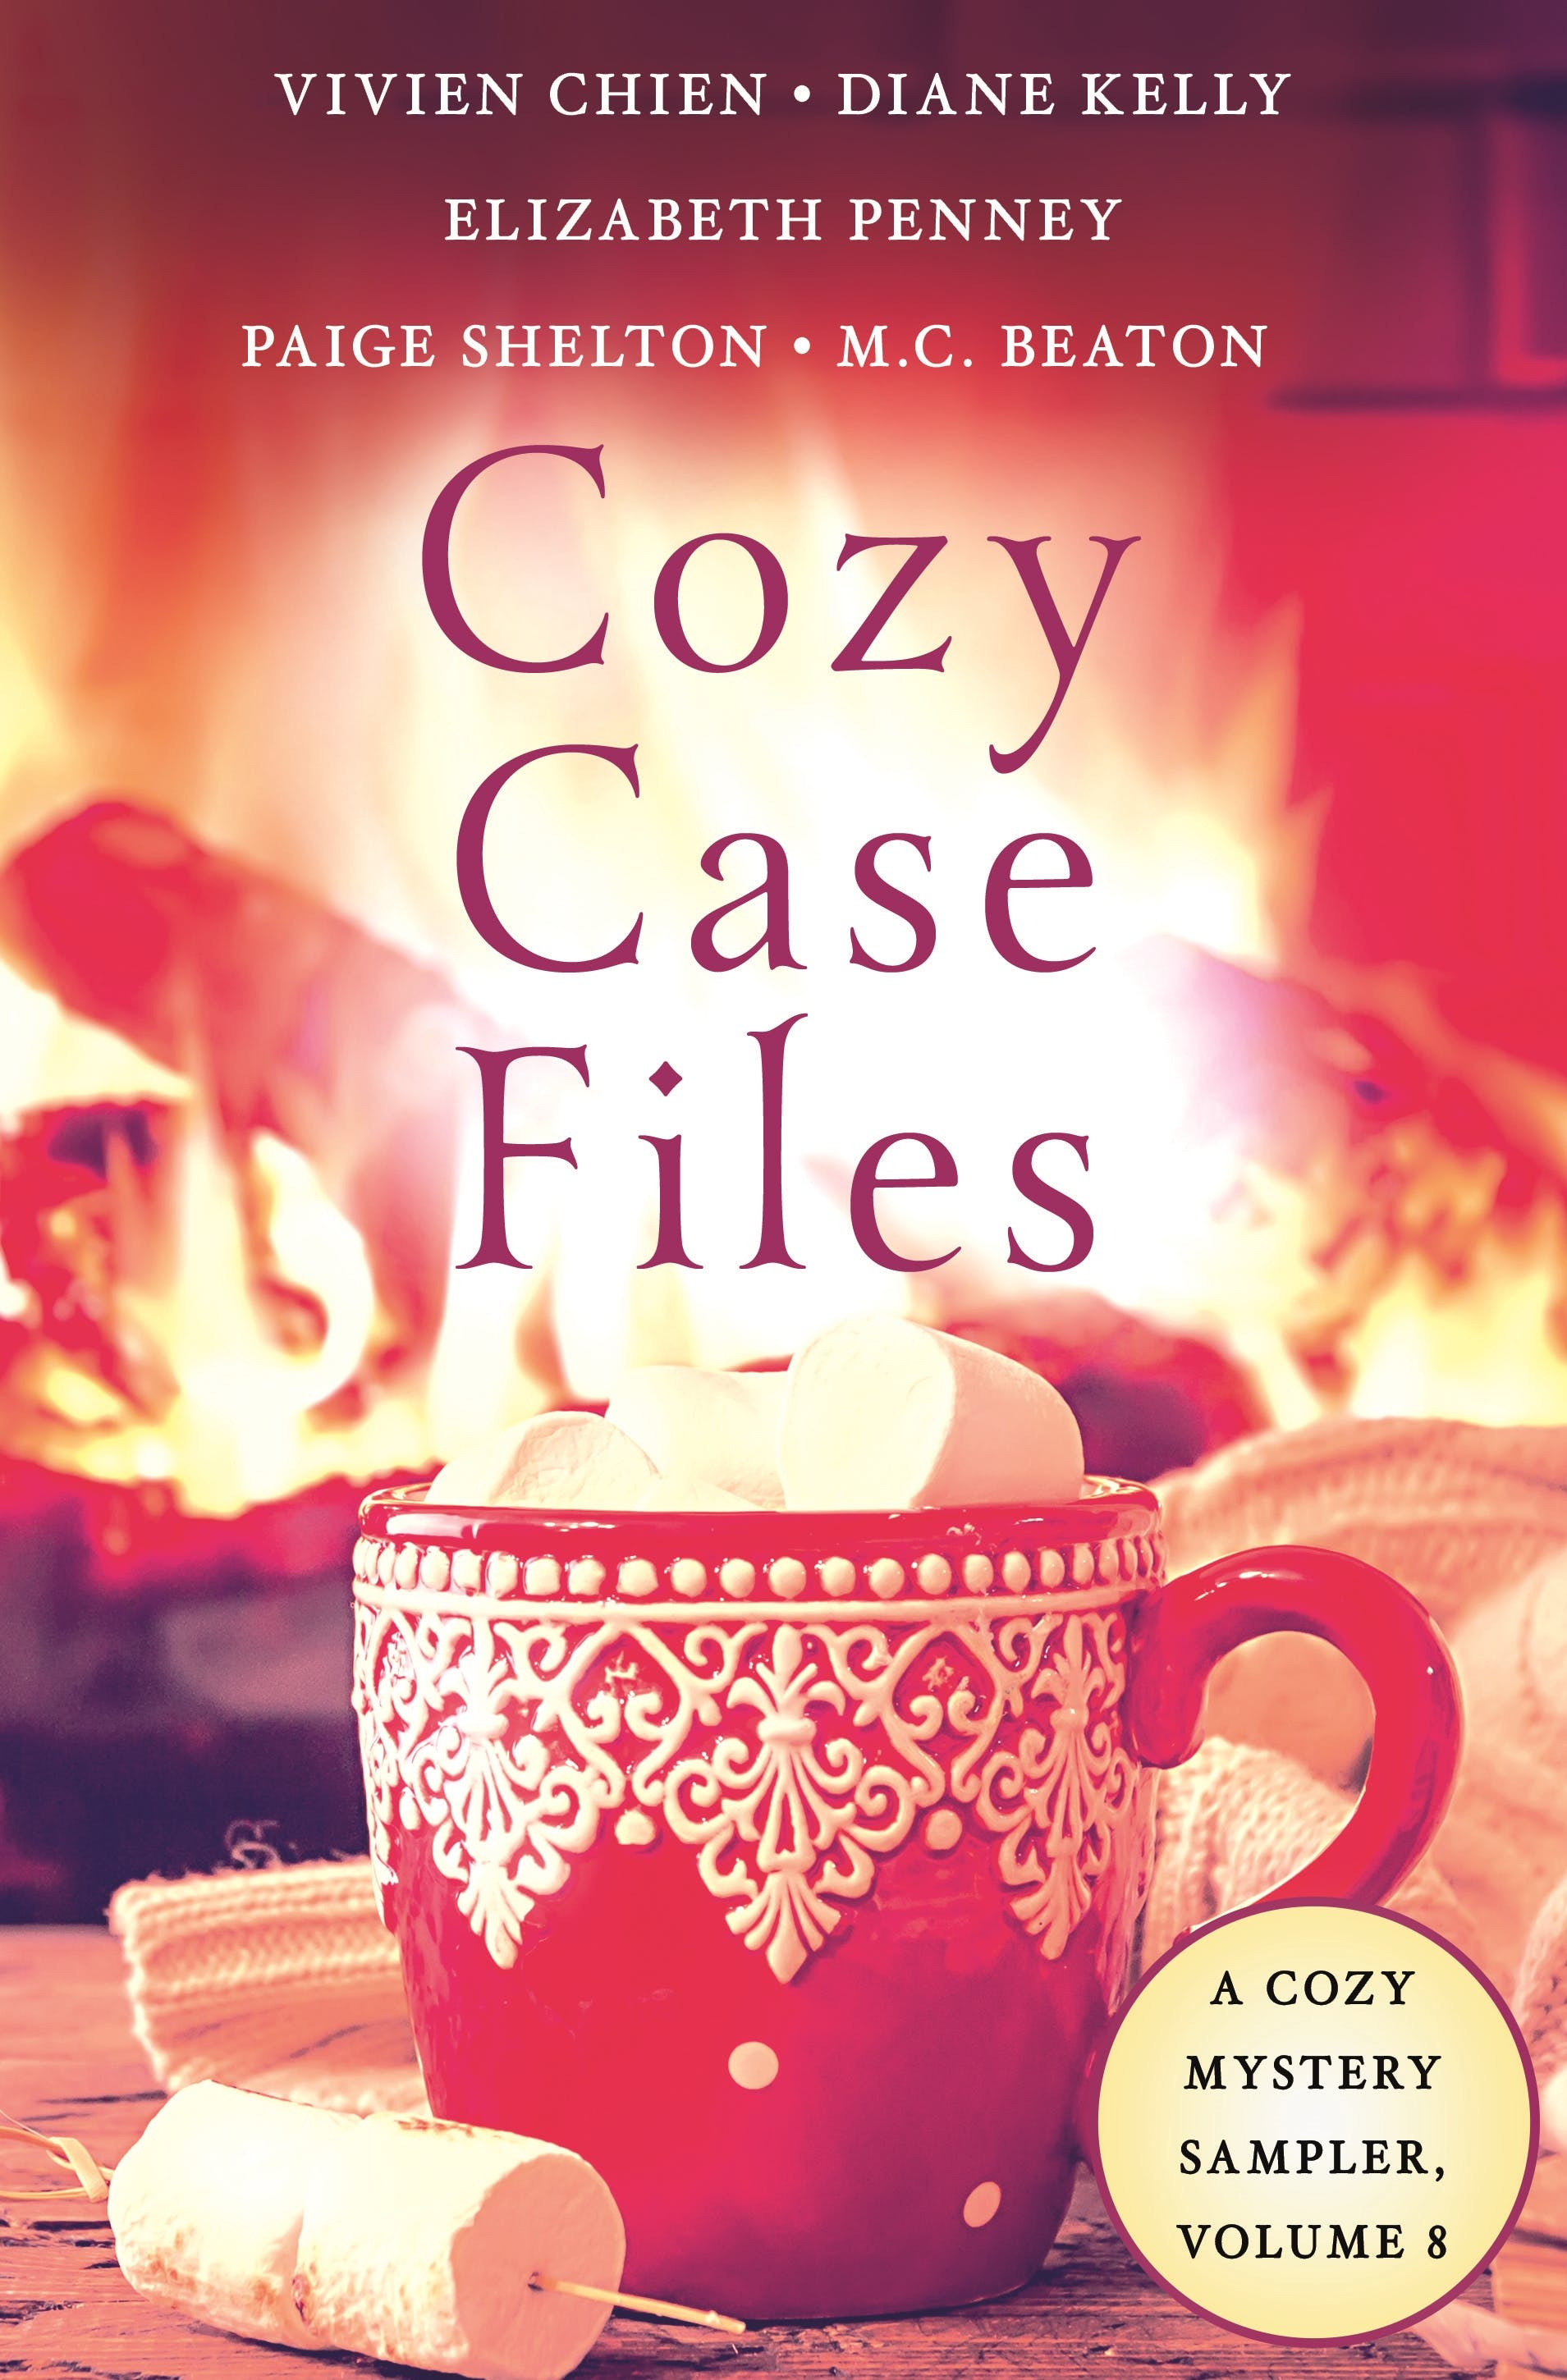 Image of Cozy Case Files, A Cozy Mystery Sampler, Volume 8